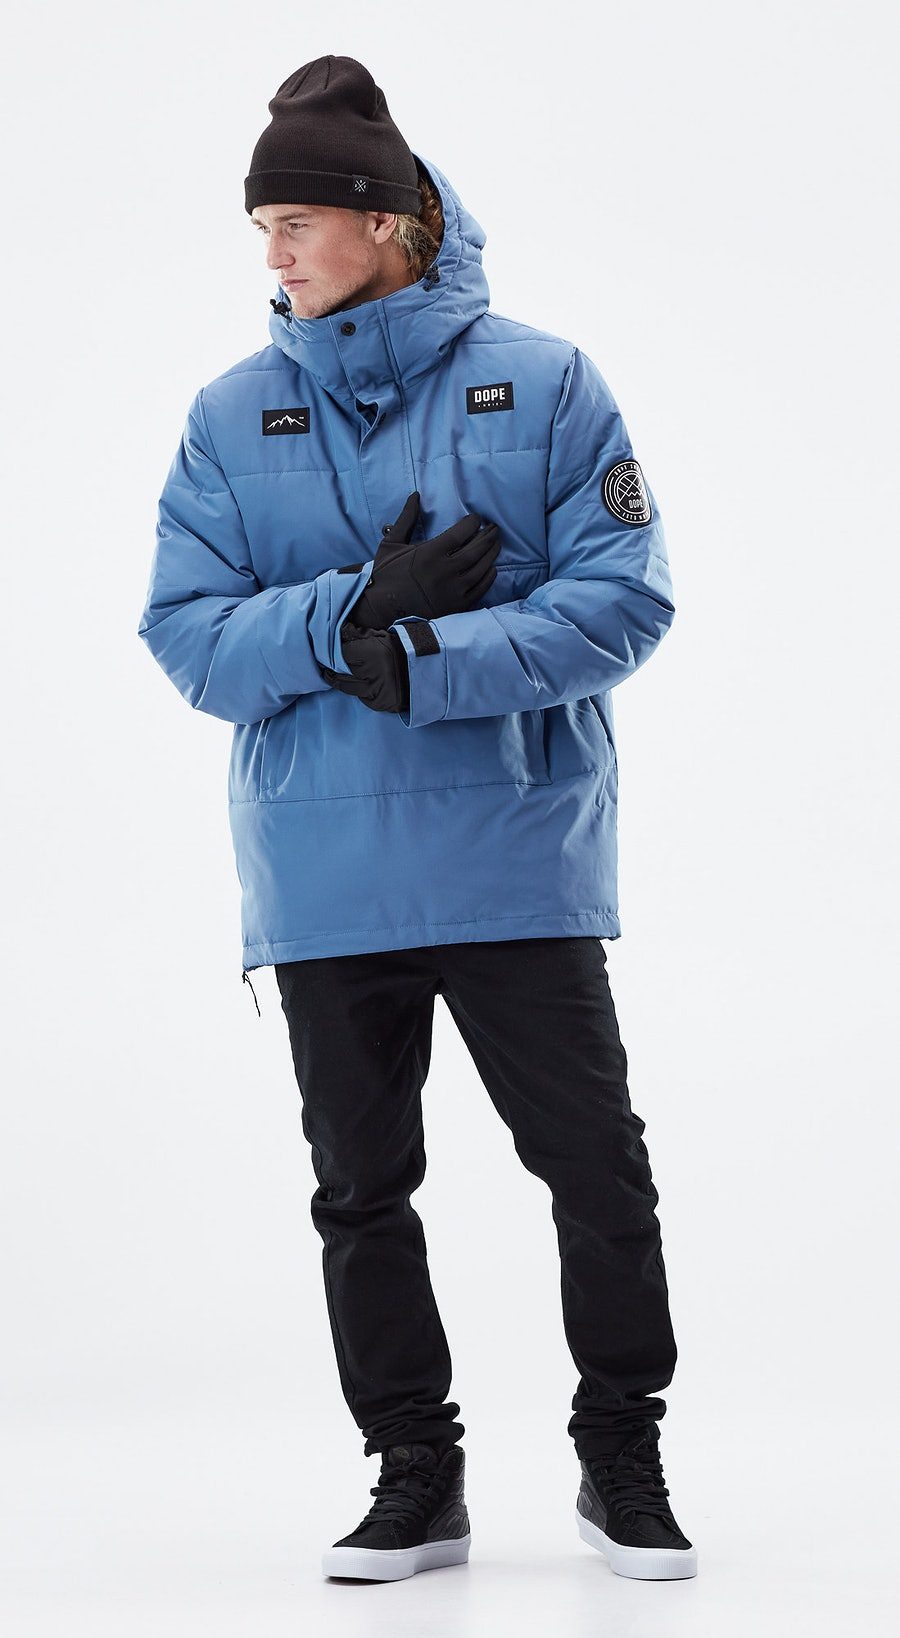 Dope Puffer Blue Steel Outfit Multi